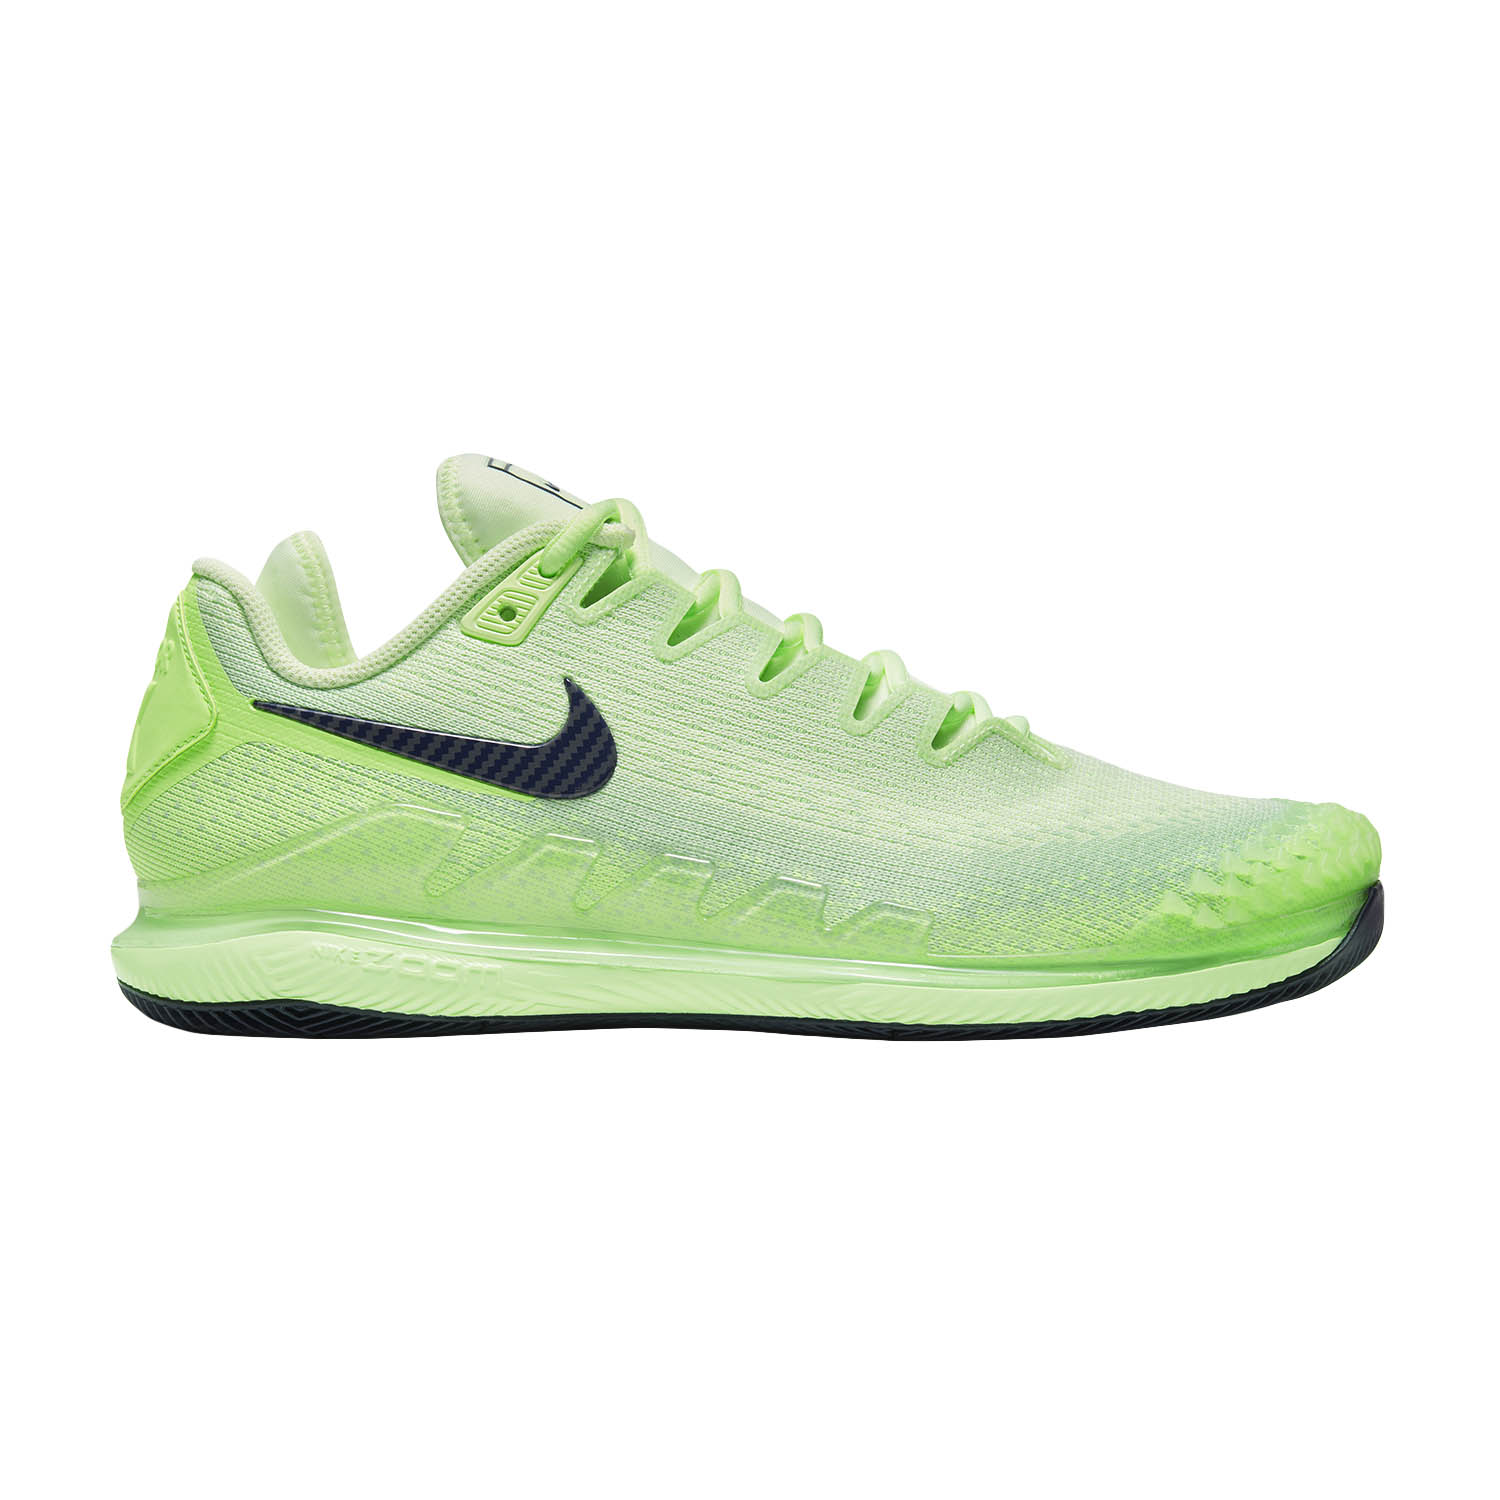 Nike Air Zoom Vapor X Knit HC - Ghost Green/Blackened Blue/Barely Volt